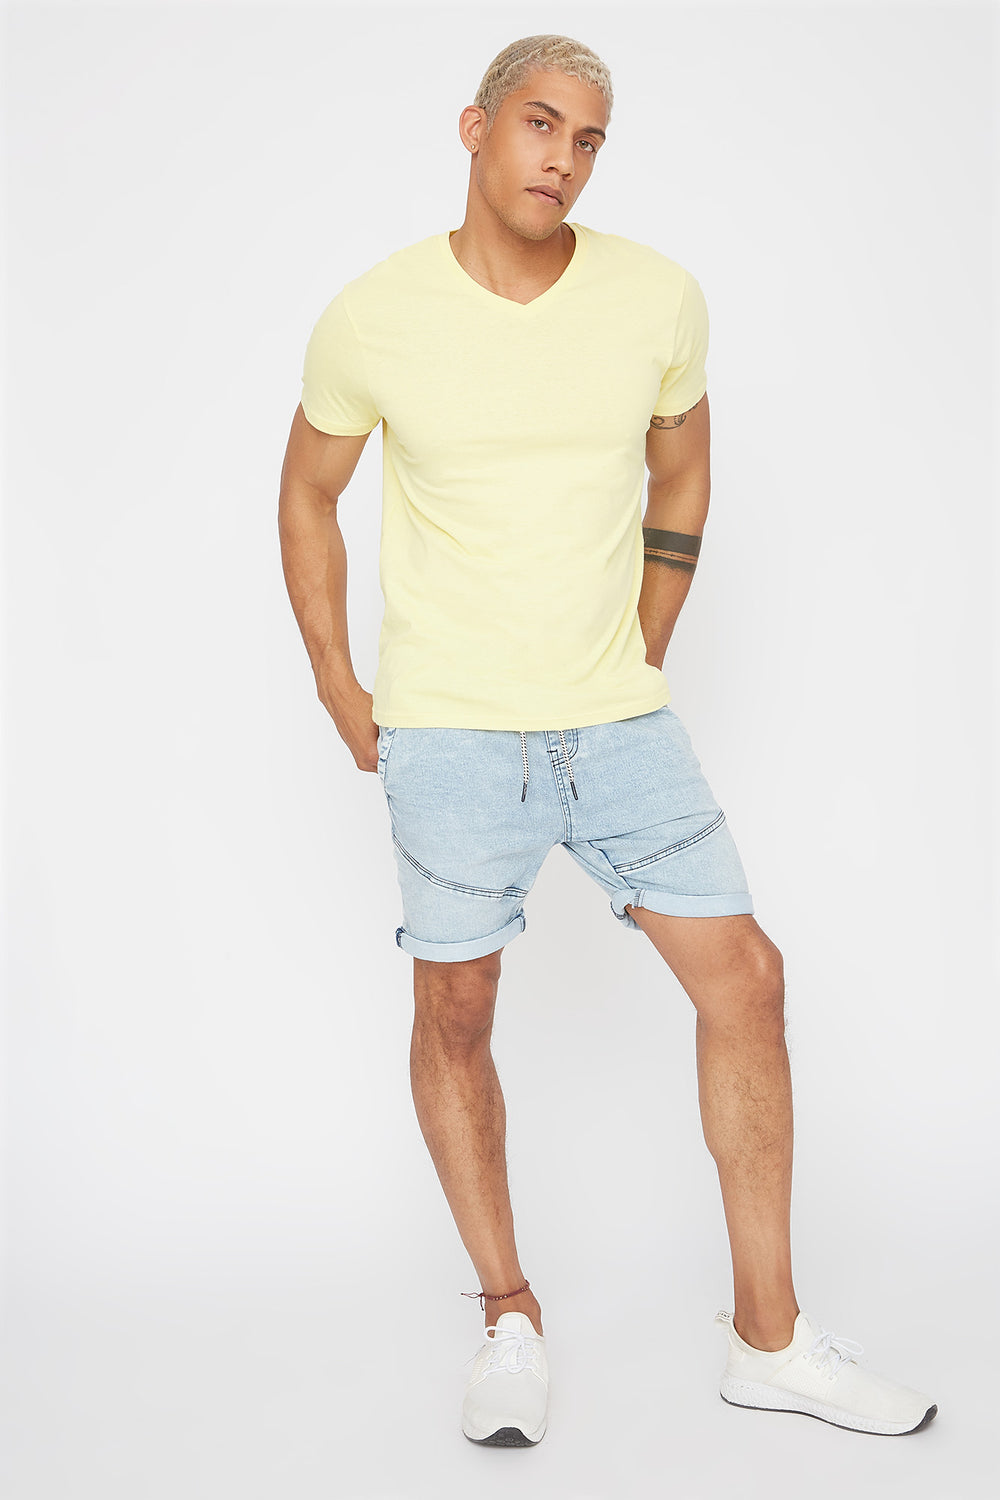 Solid Basic V-Neck T-Shirt Pale Yellow